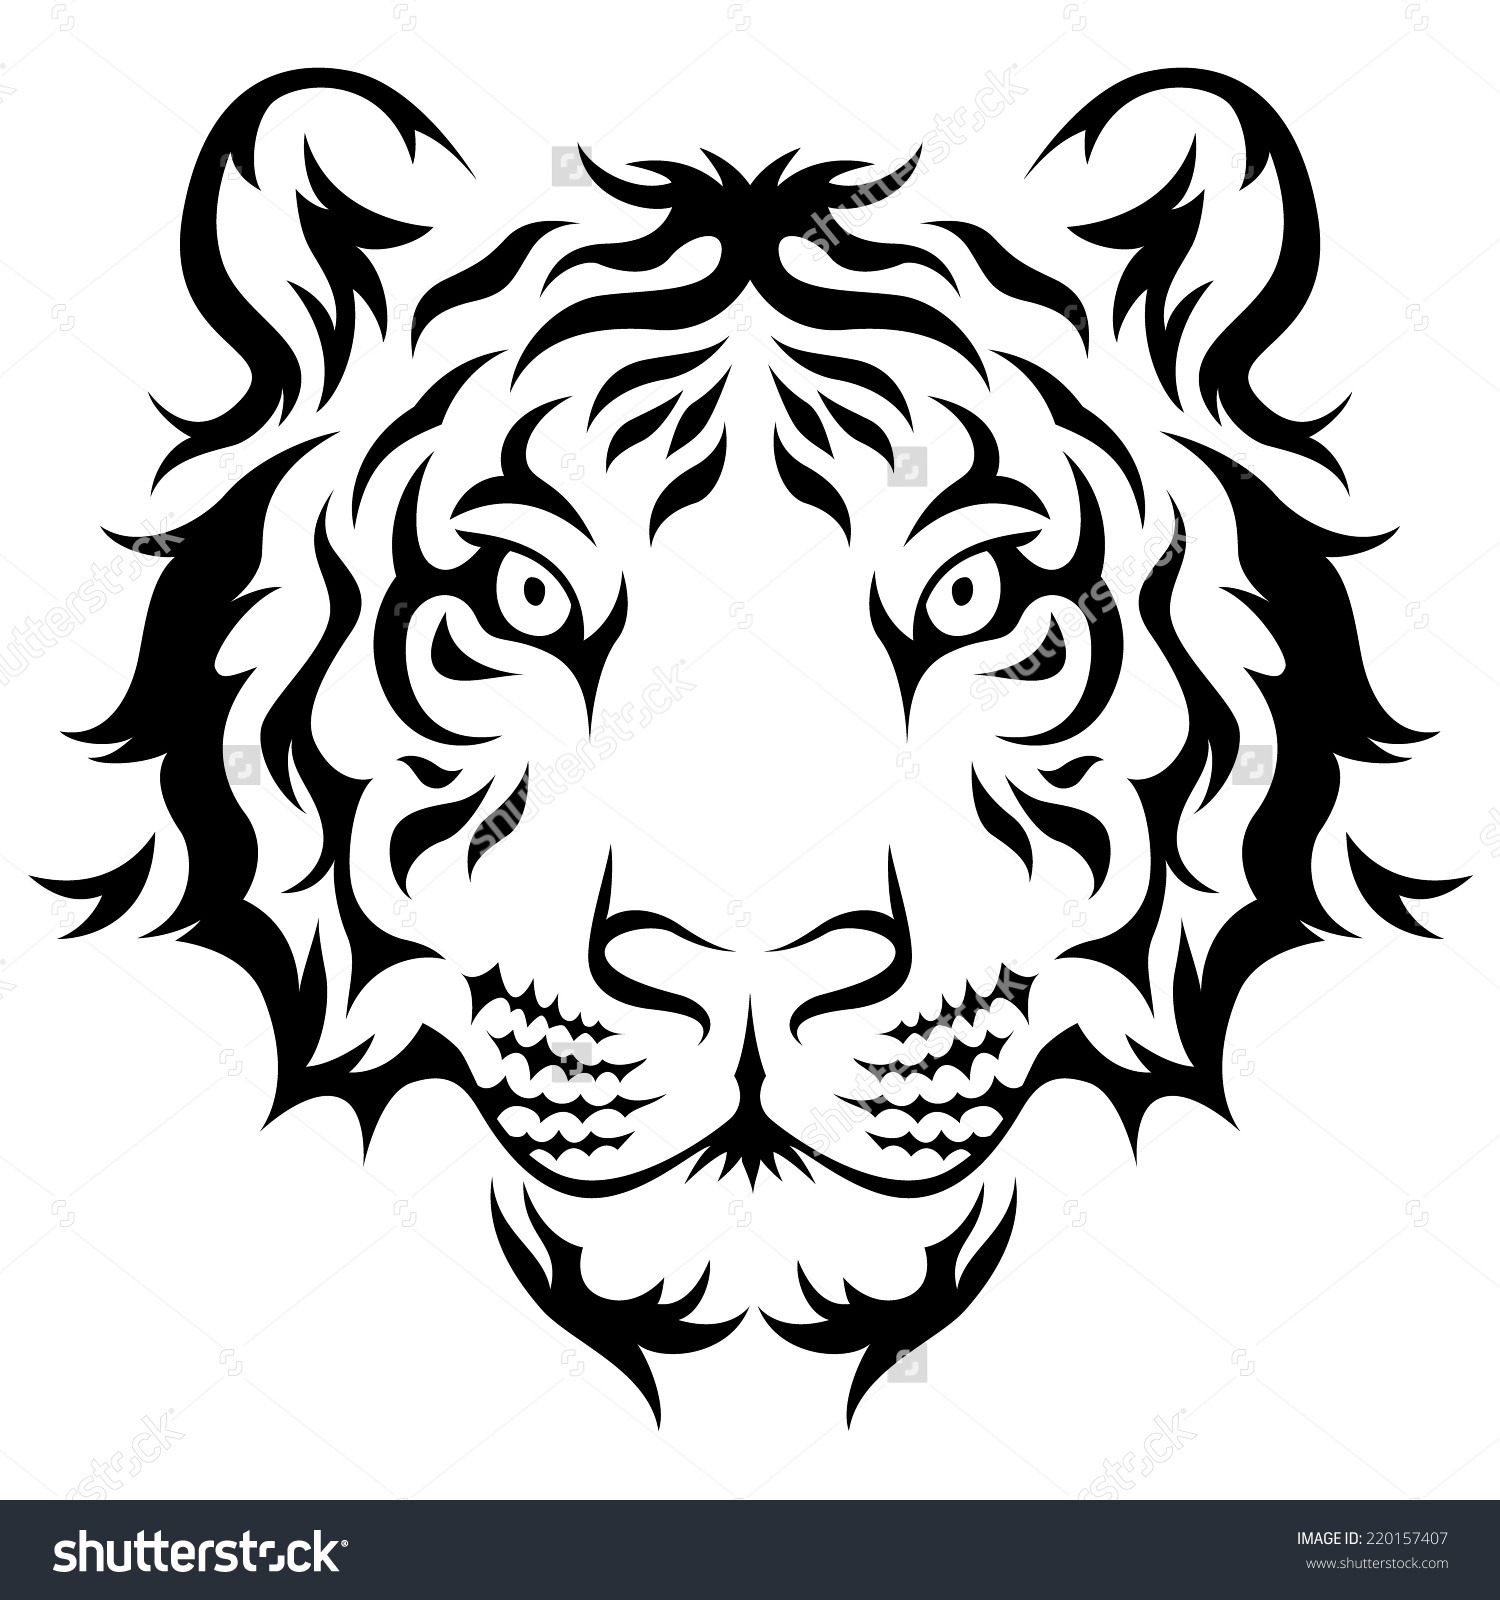 Tigers Eye Drawing At Getdrawingscom Free For Personal Use Tigers